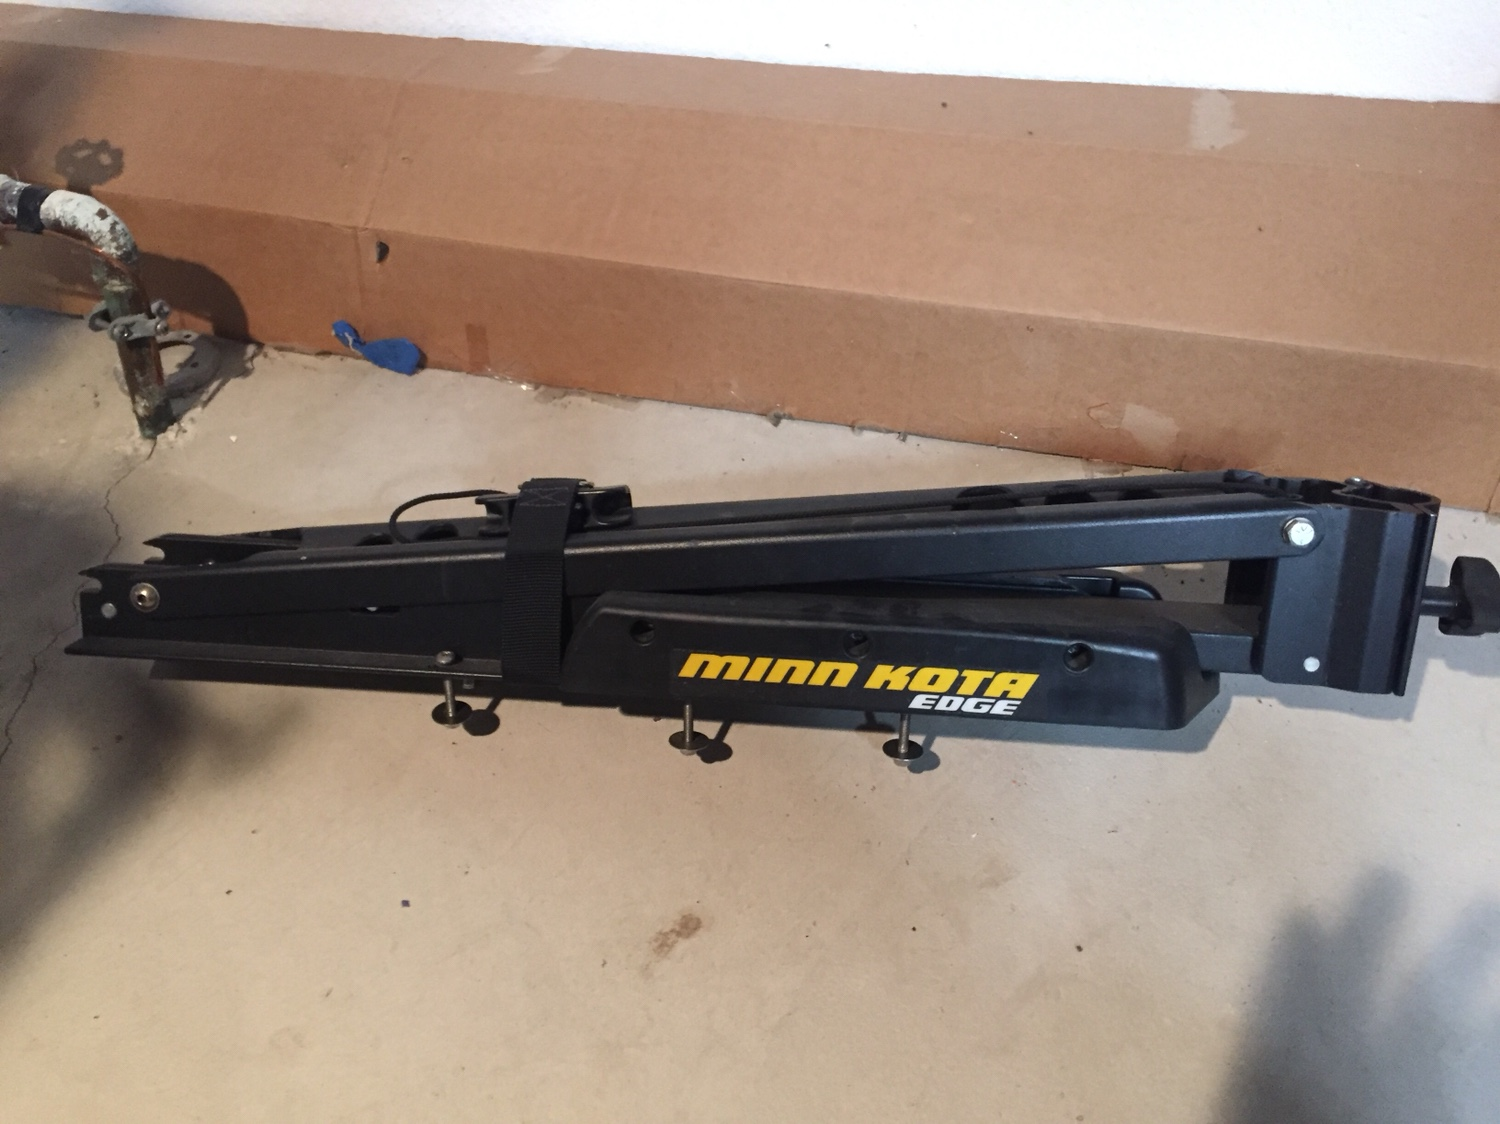 "Minn Kota Edge 70 24v 52"" - $450 